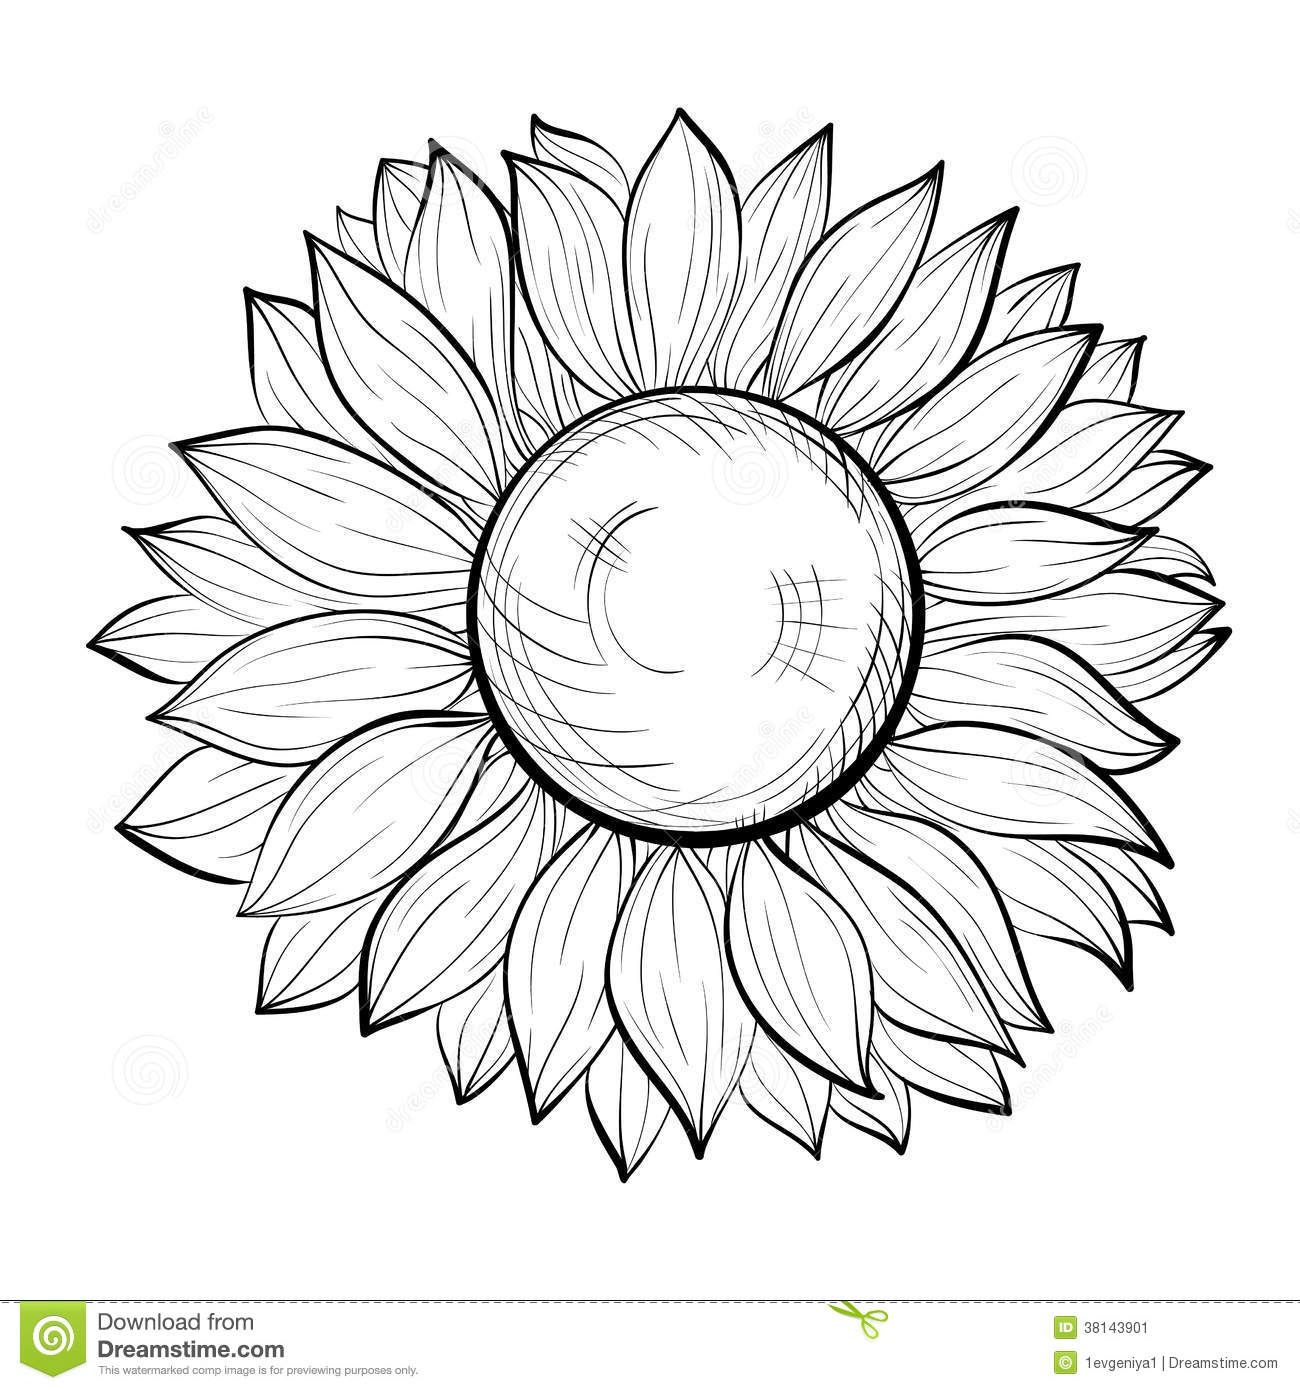 sunflower drawing - Buscar con Google | Pics - Black  for Clipart Sunflower Black And White  45gtk